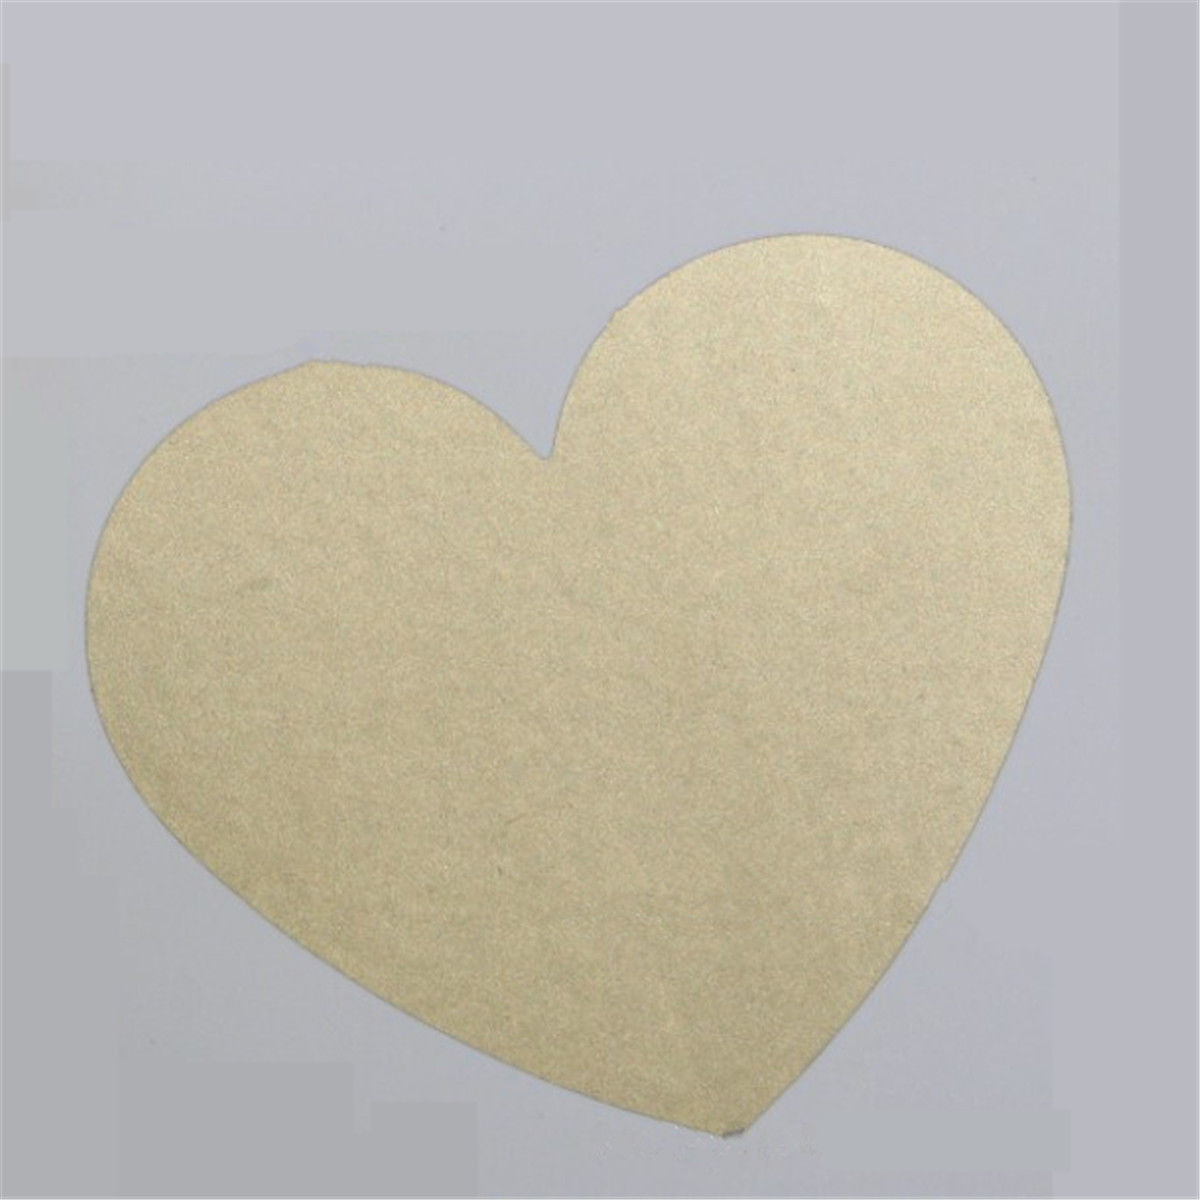 10 Pcs Scratch Off Stickers Heart Shaped Stickup Post Card Christmas Festival